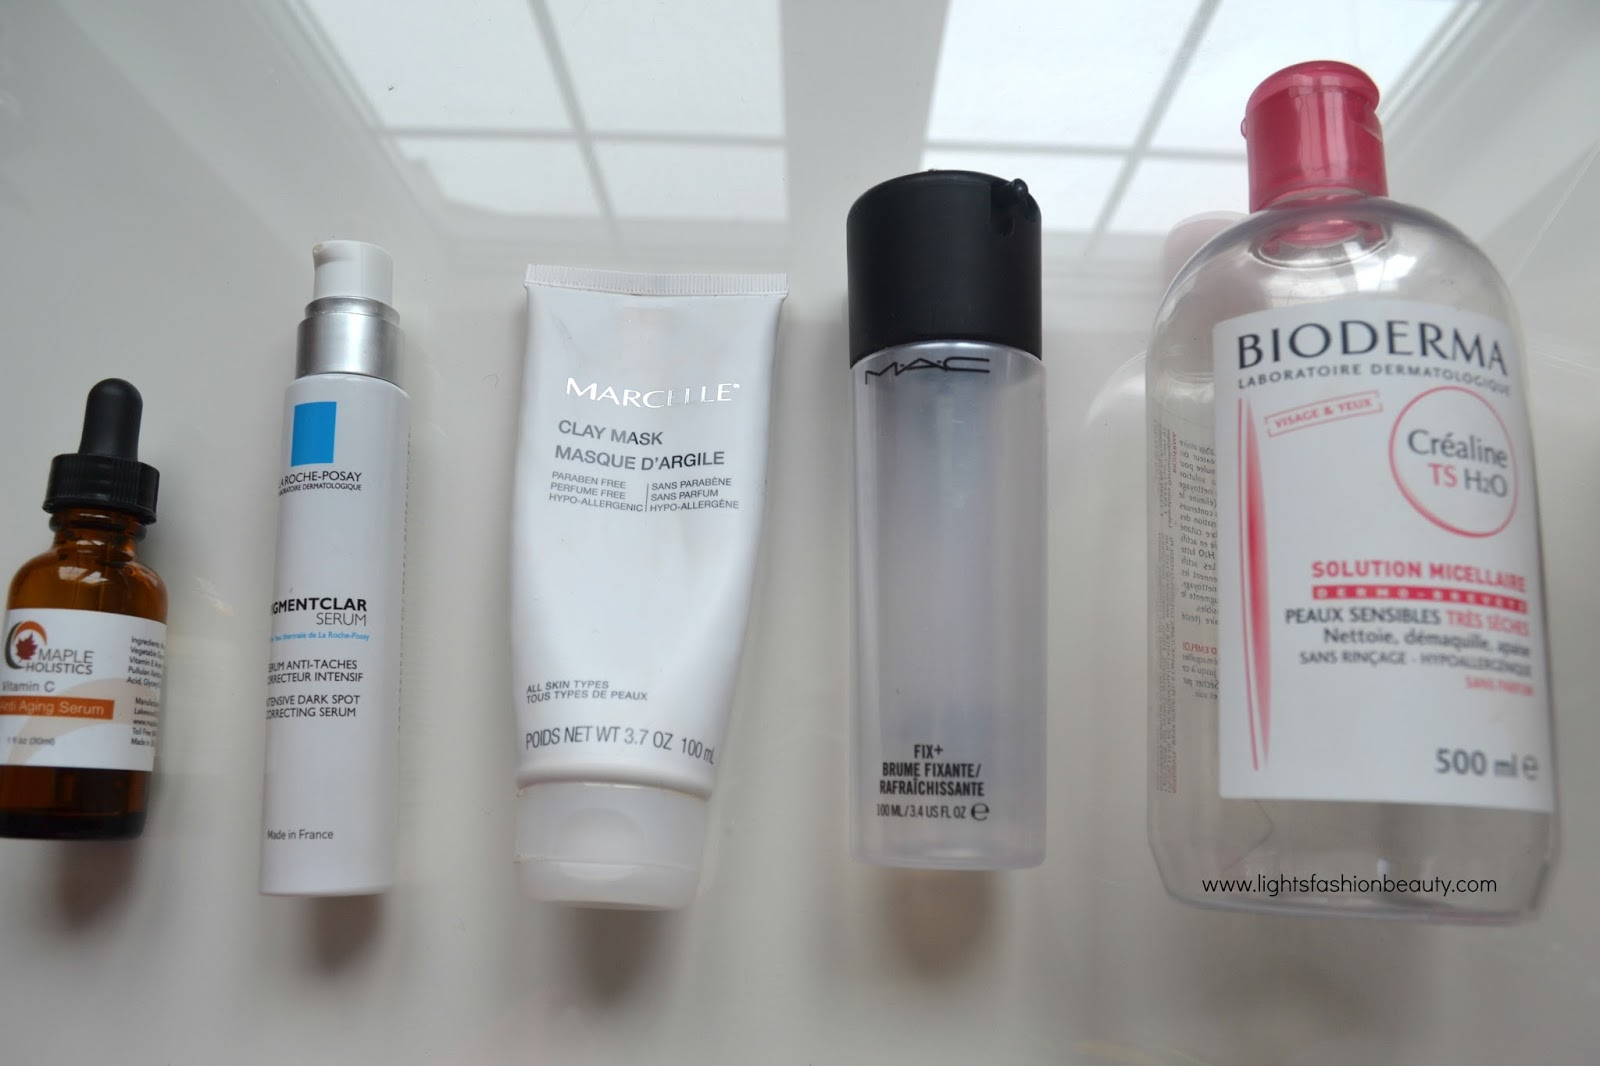 mac empties, bioderma micellar water, la roche posay pigmentclar serum, lightsfashionbeauty, beauty blogger, brown beauty blogger, montreal beauty blogger, hatian beauty blogger